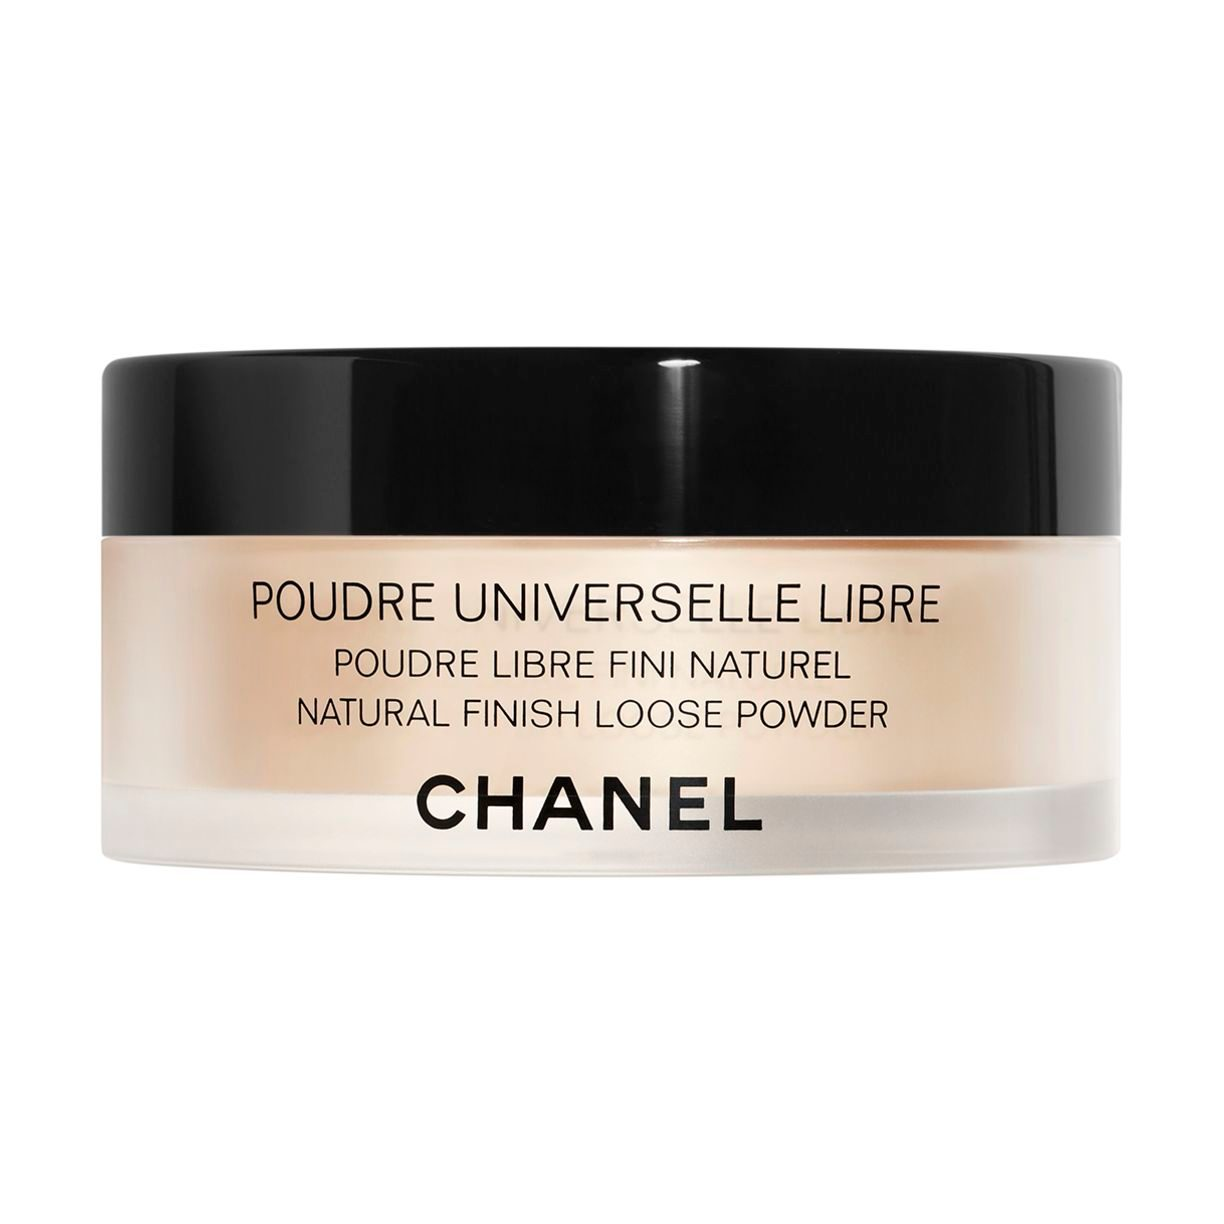 POUDRE UNIVERSELLE LIBRE 輕盈完美蜜粉